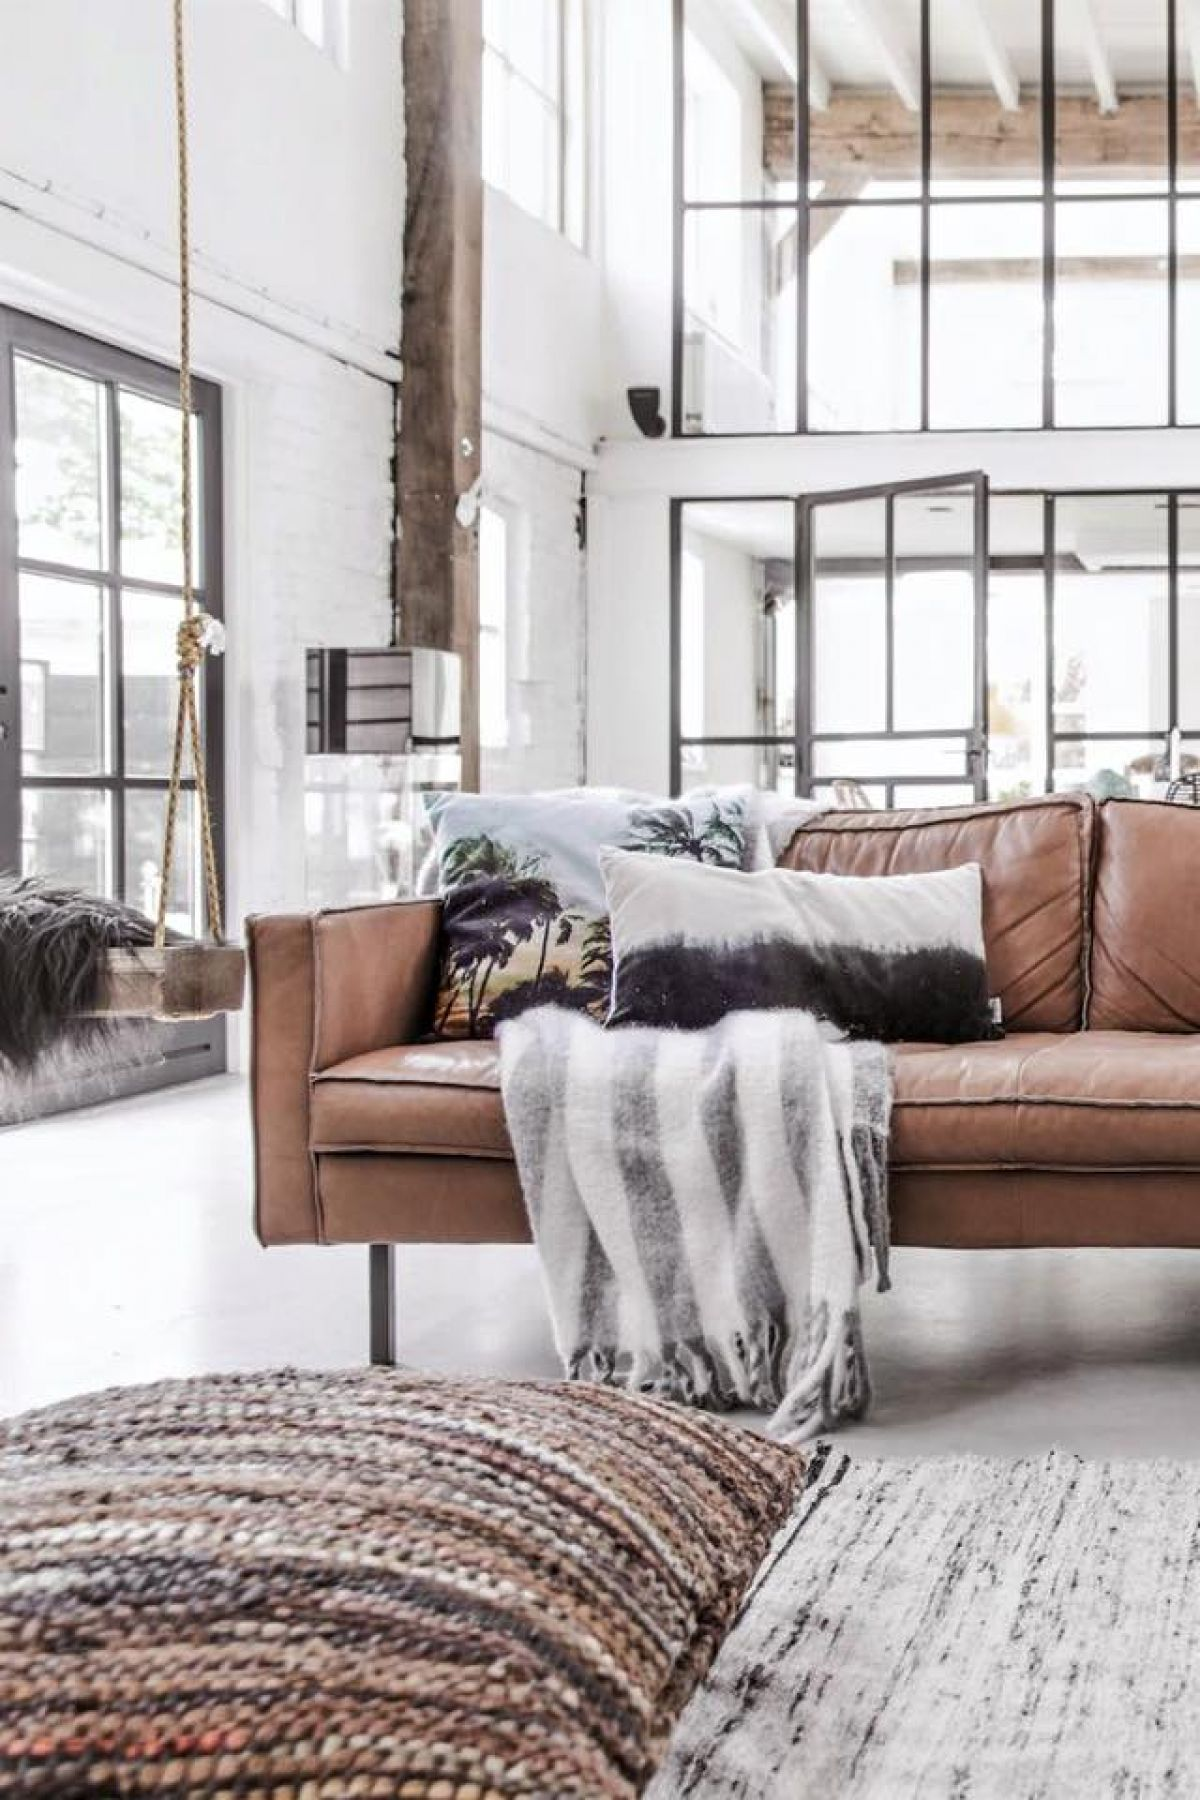 rug living room industrial style industrial interior Living room design: industrial interior rug living room industrial style